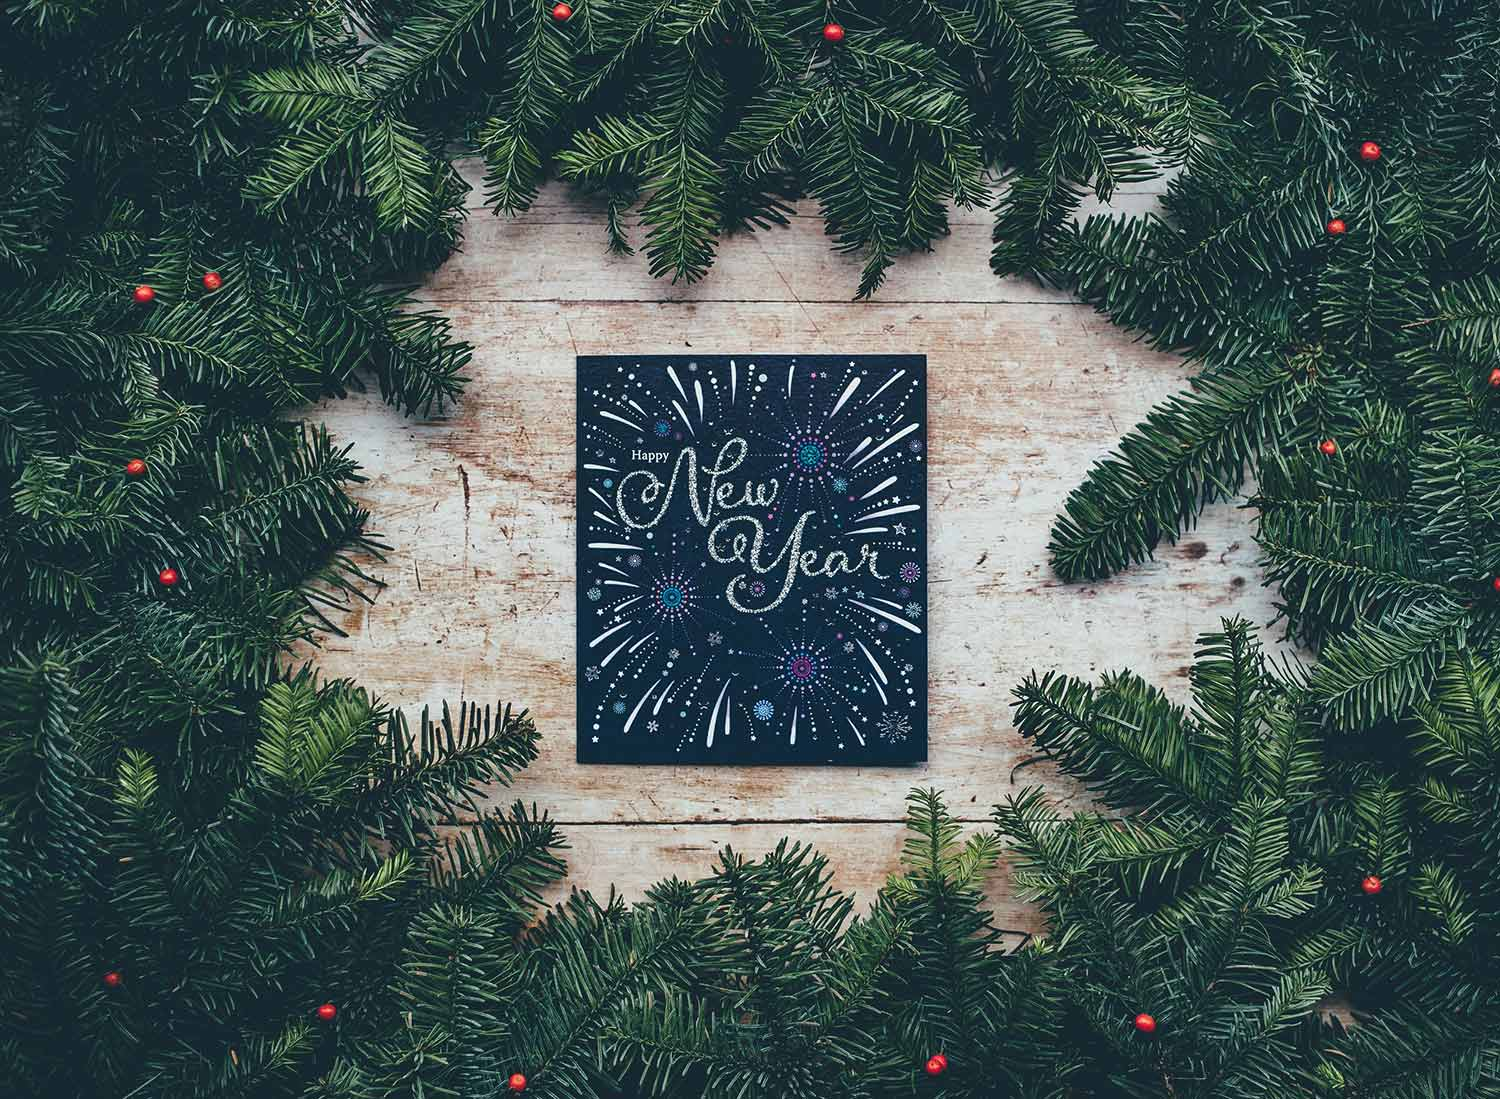 """A hand-lettered sign reading """"New Year"""" is surrounded by pine branches. Practical New Year's resolutions"""